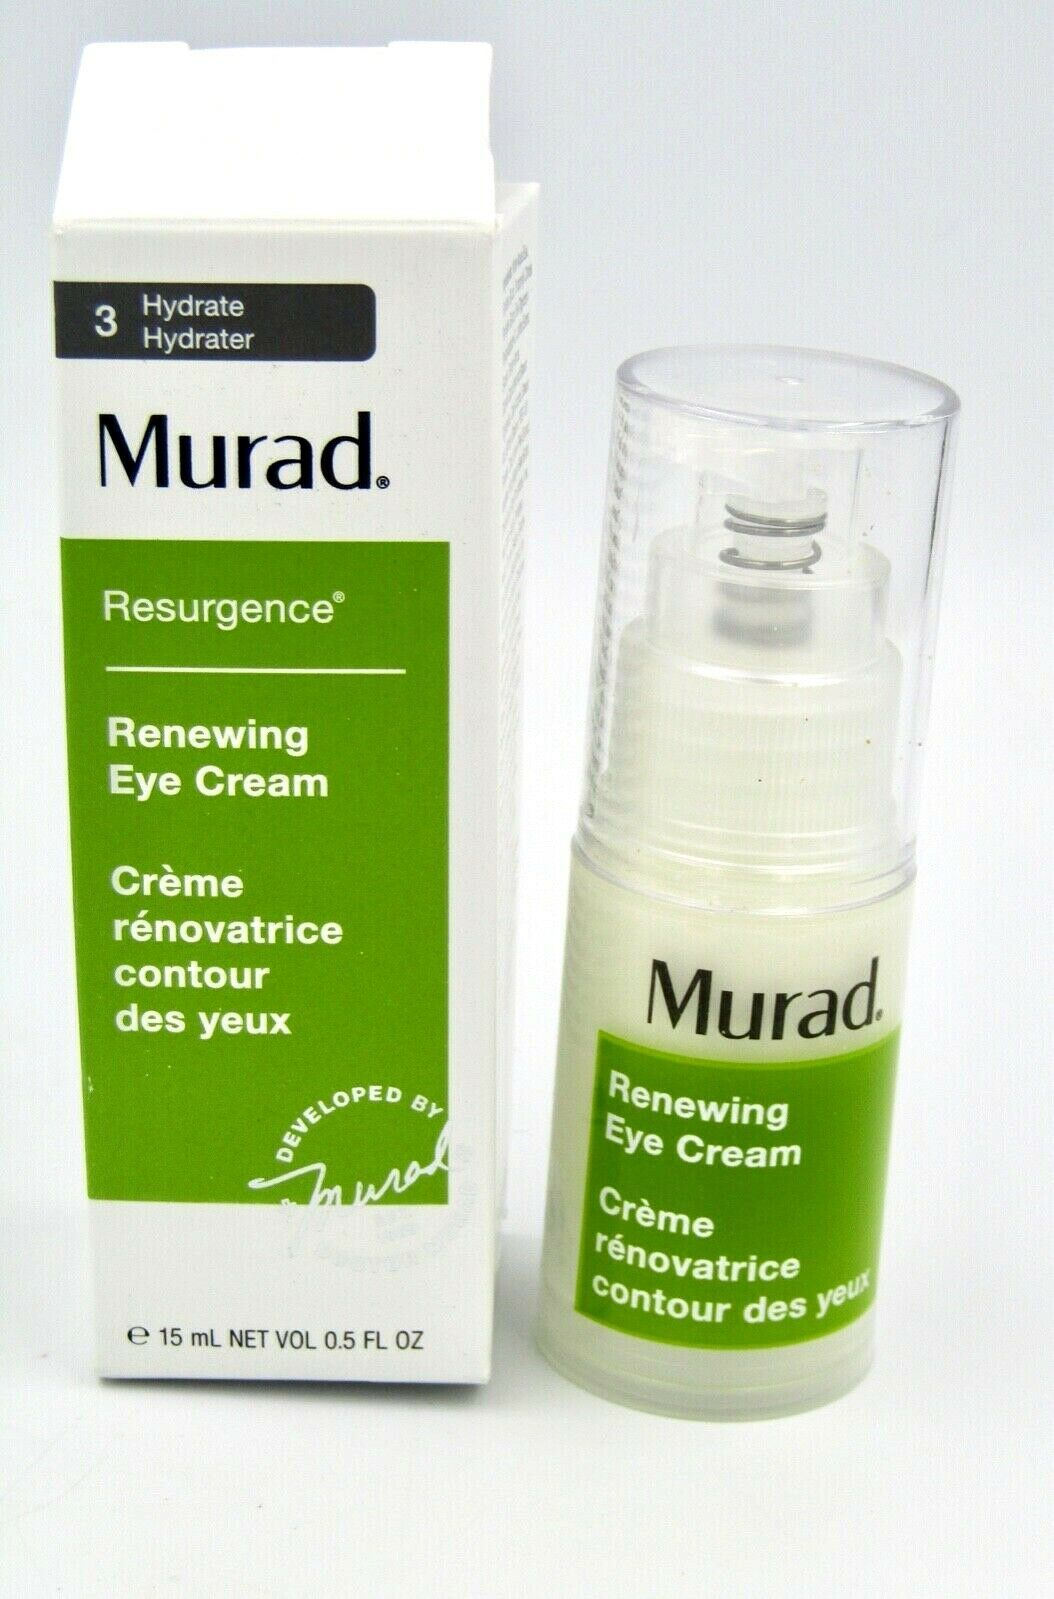 Primary image for Murad Renewing Eye Cream 15 ml 0.5 fl oz Hydrate Resurgence New (Retail $ 82.00)